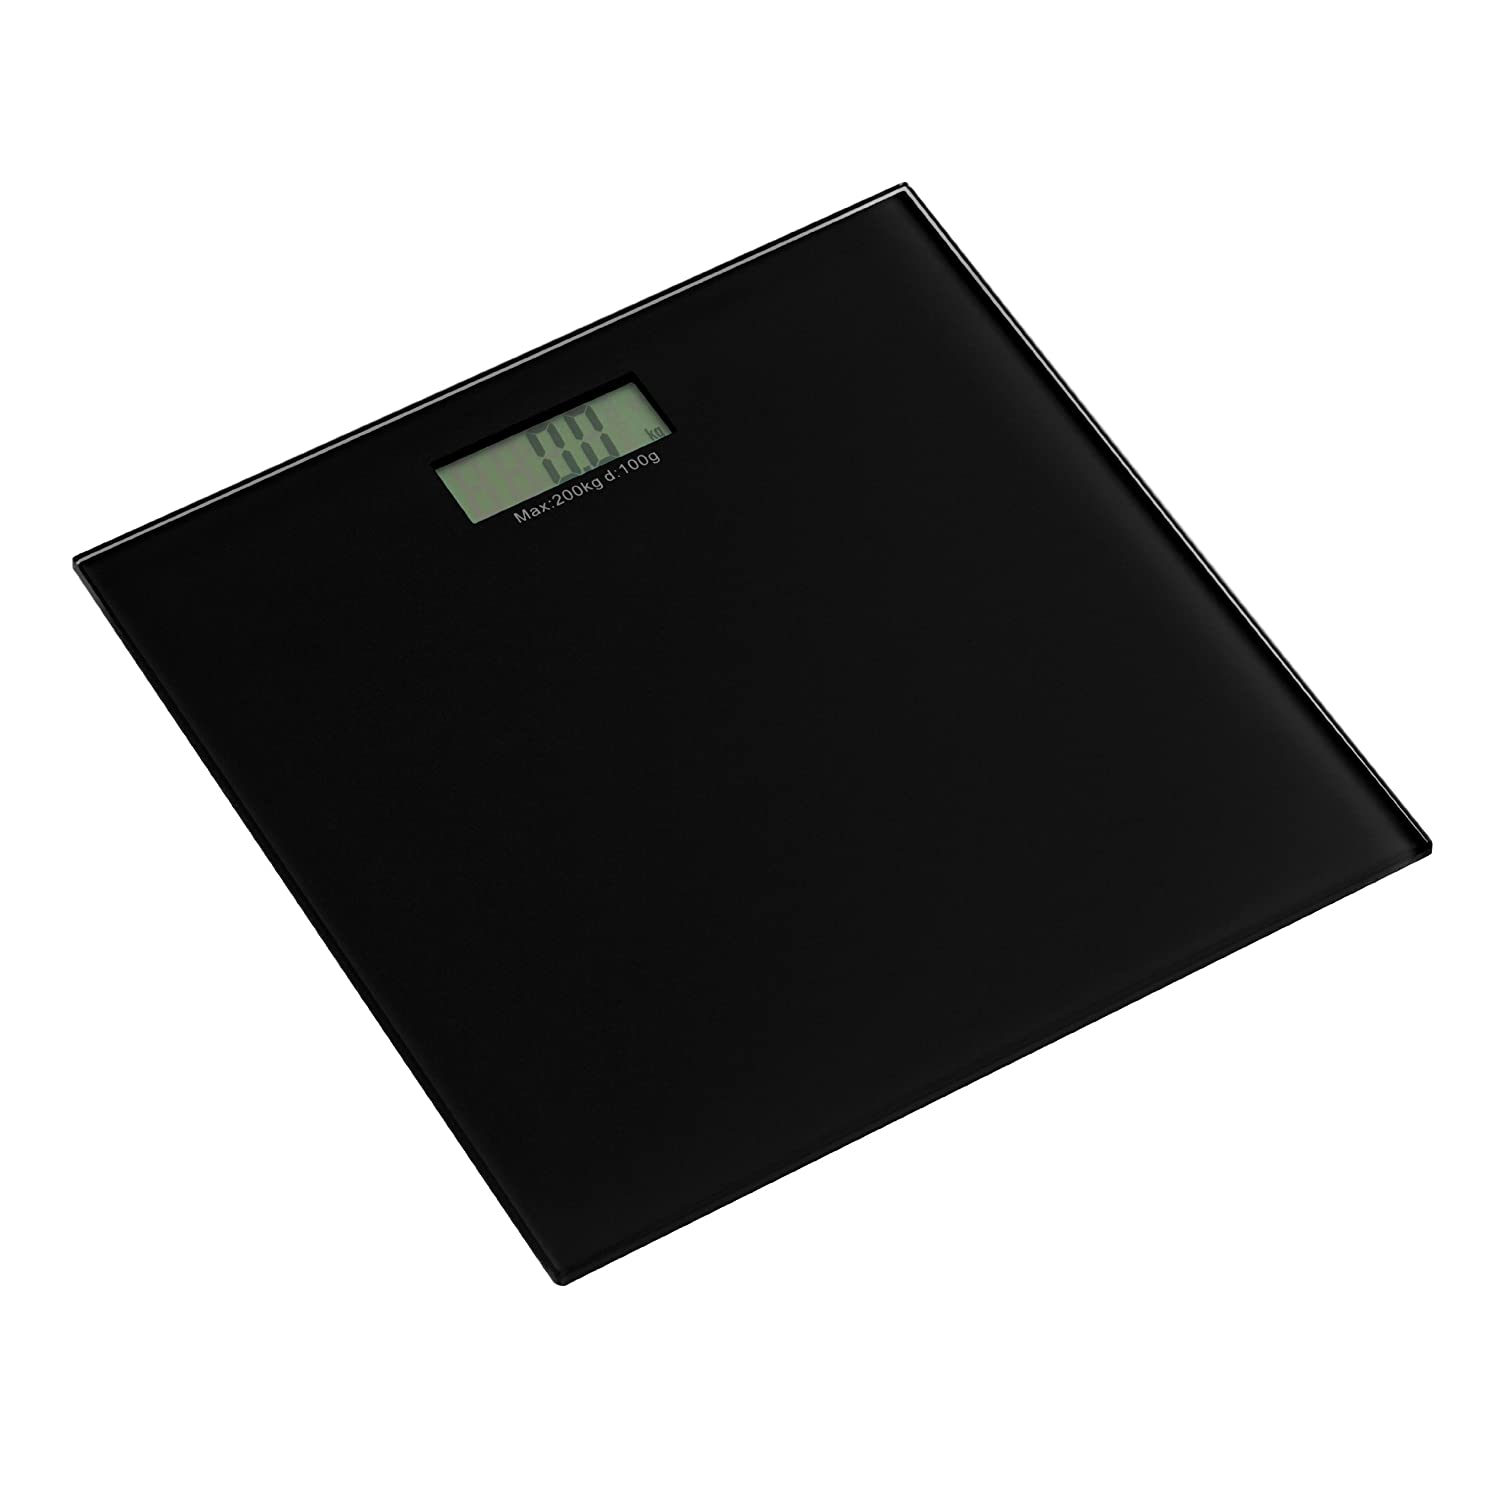 Premier Housewares Square Modern Black Tempered Glass Scale